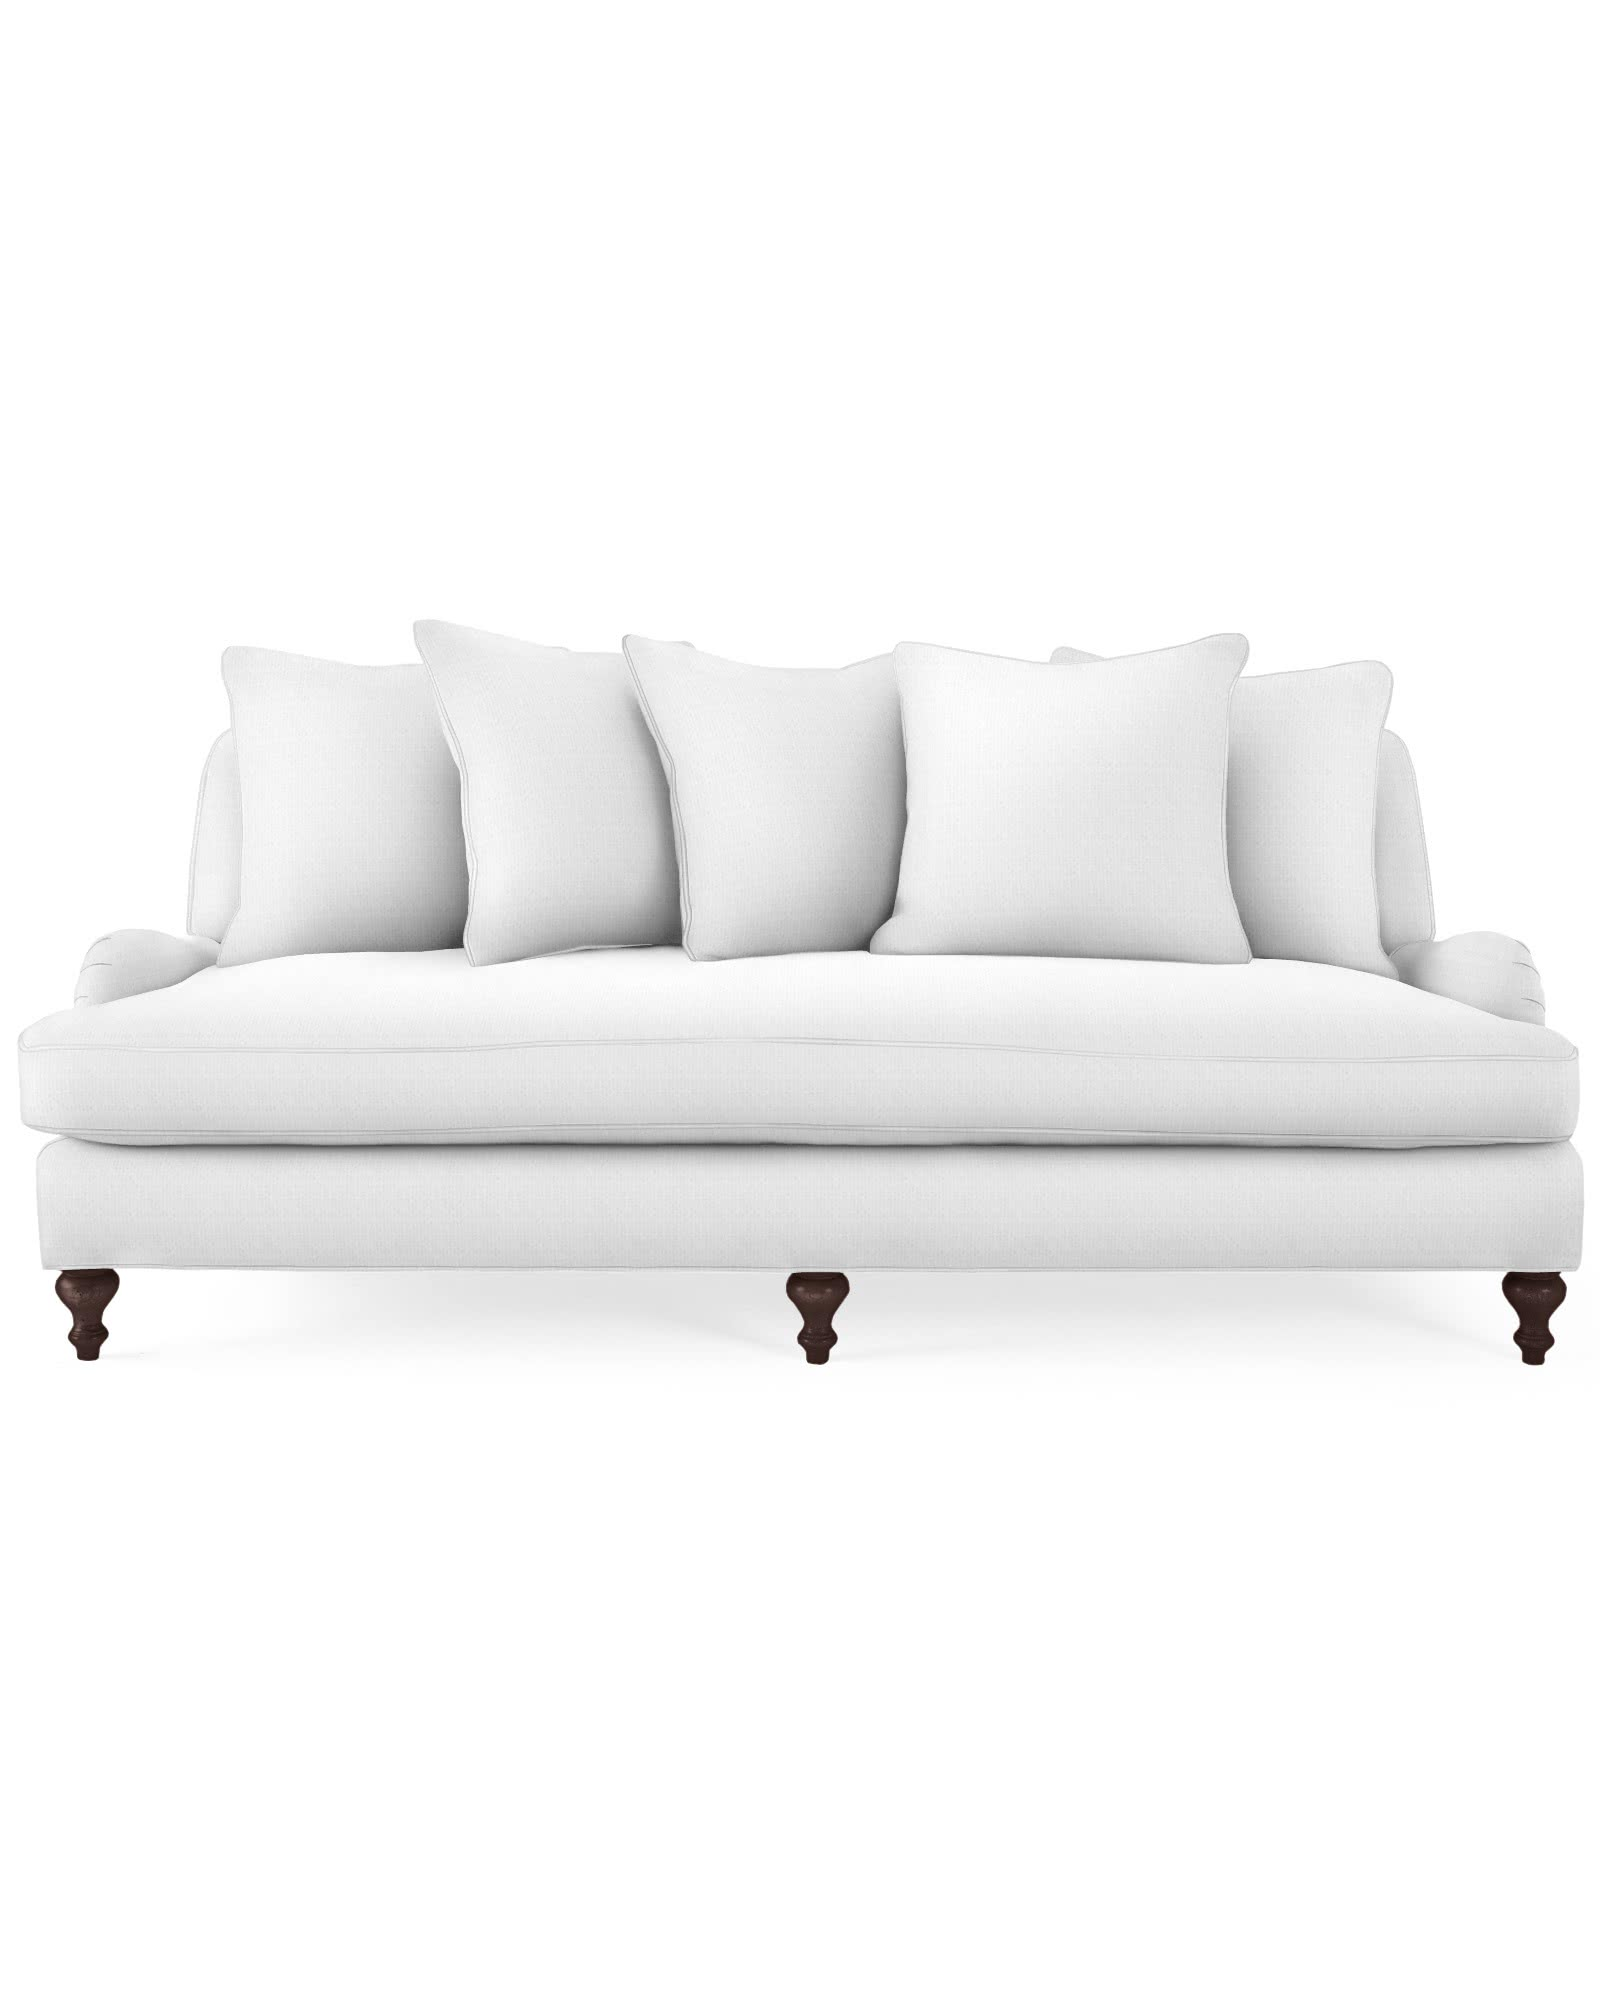 Wonderful Miramar Sofa With Bench Seat